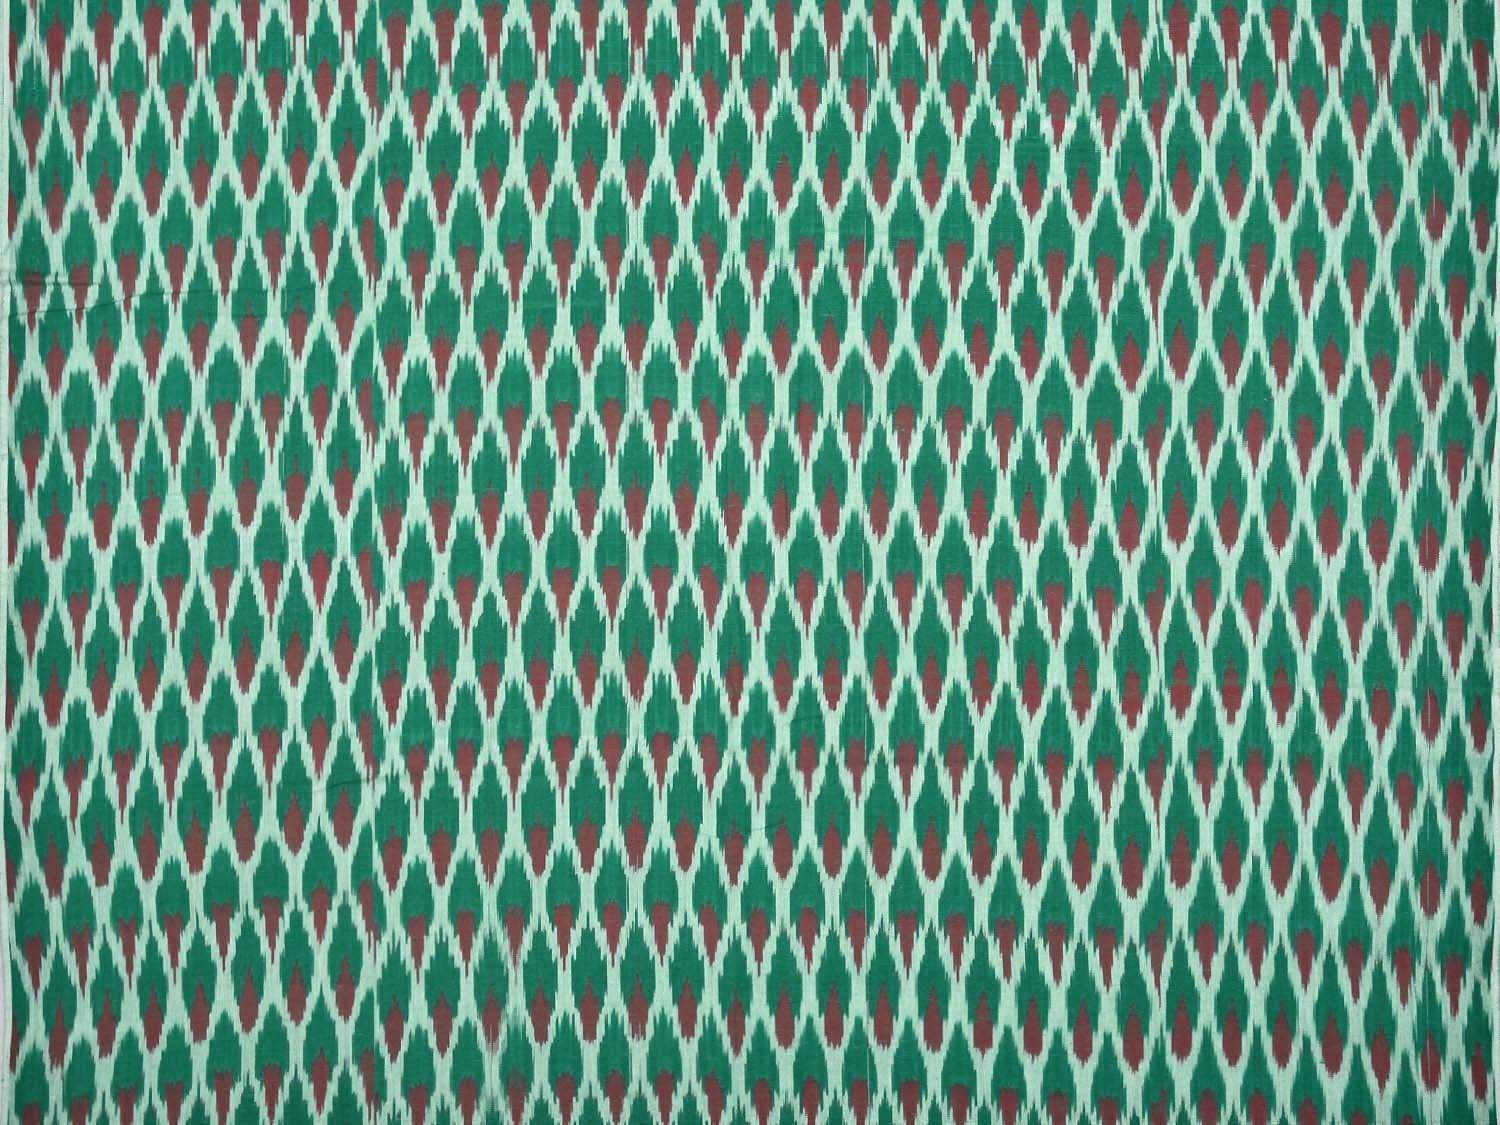 Green and Red Pochampally Ikat Cotton Handloom Fabric Material with Grill Design f0136